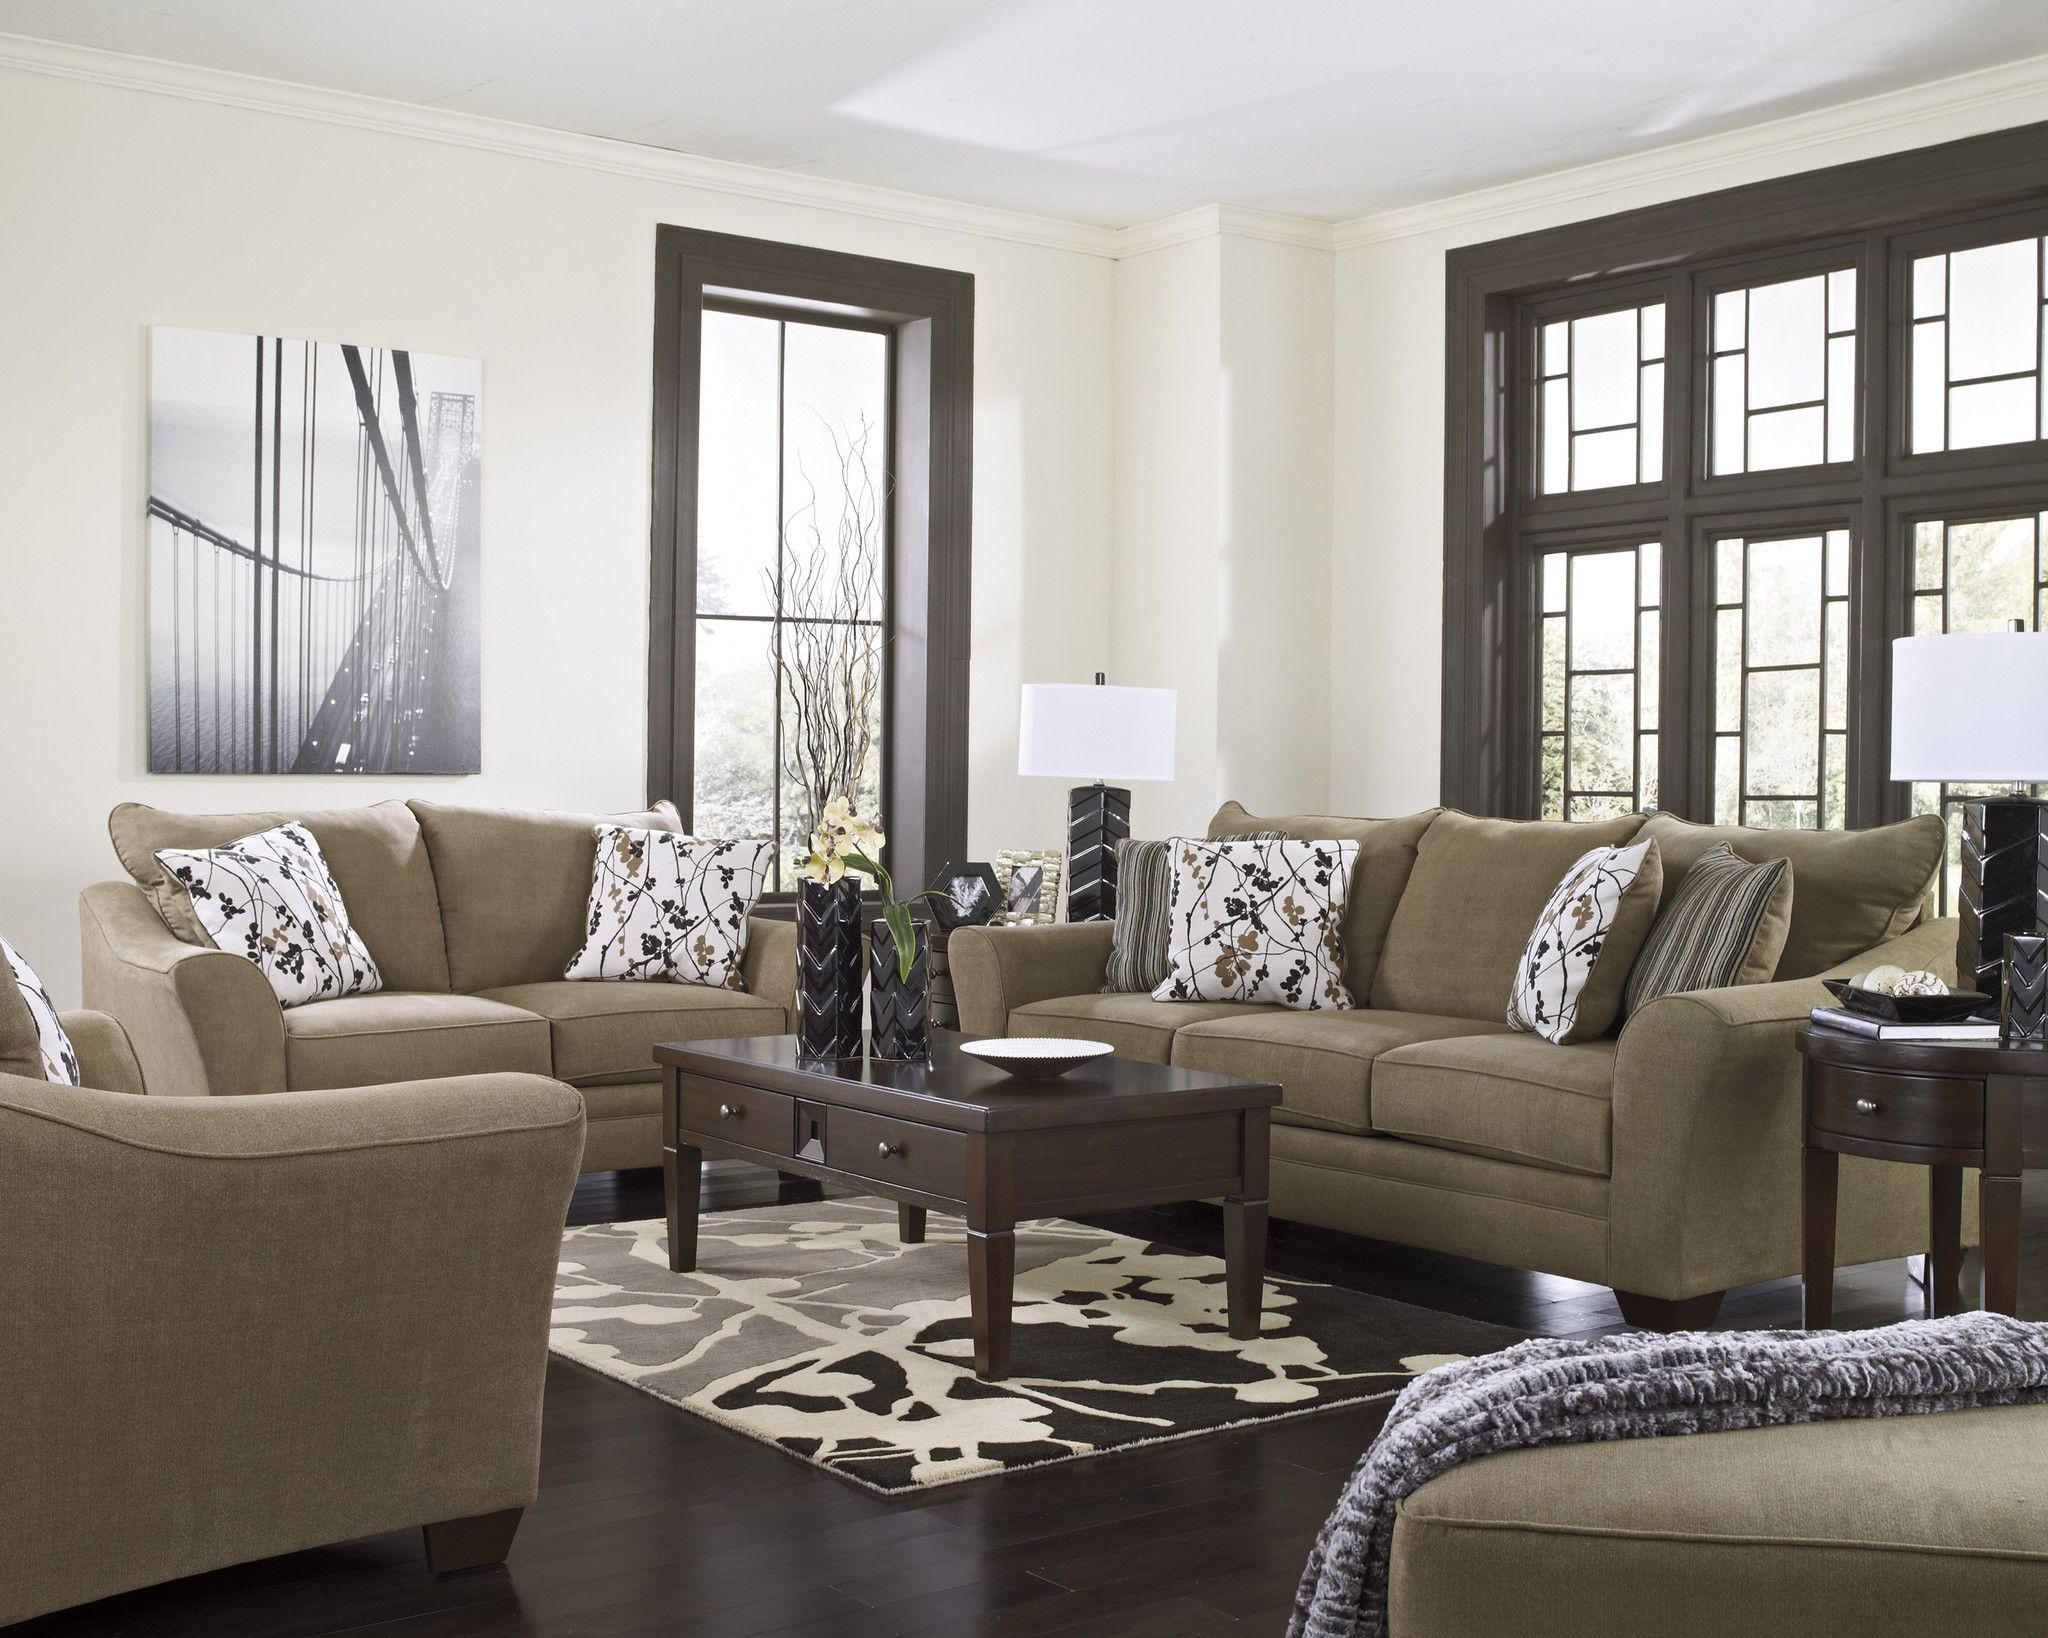 Nayeli - Sofa Loveseat Chair and a Half Ottoman Set 4pcs ...